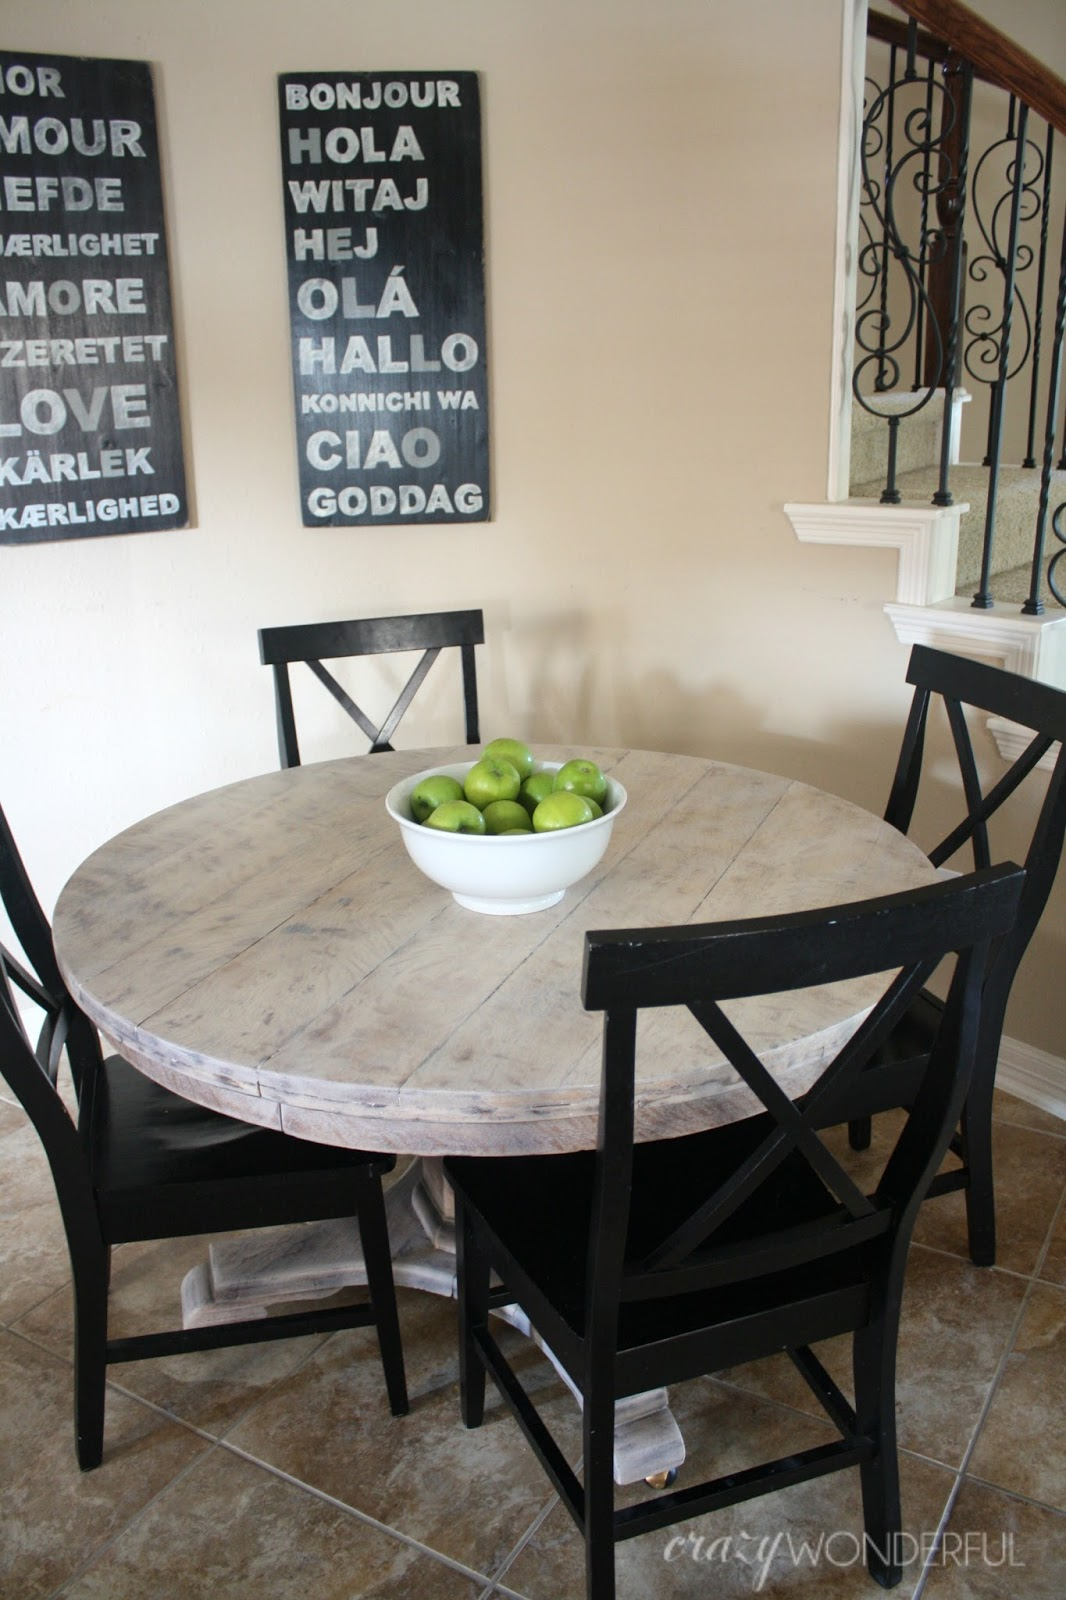 Bleached Wood Look With Liming Wax Crazy Wonderful - Bleached wood dining table